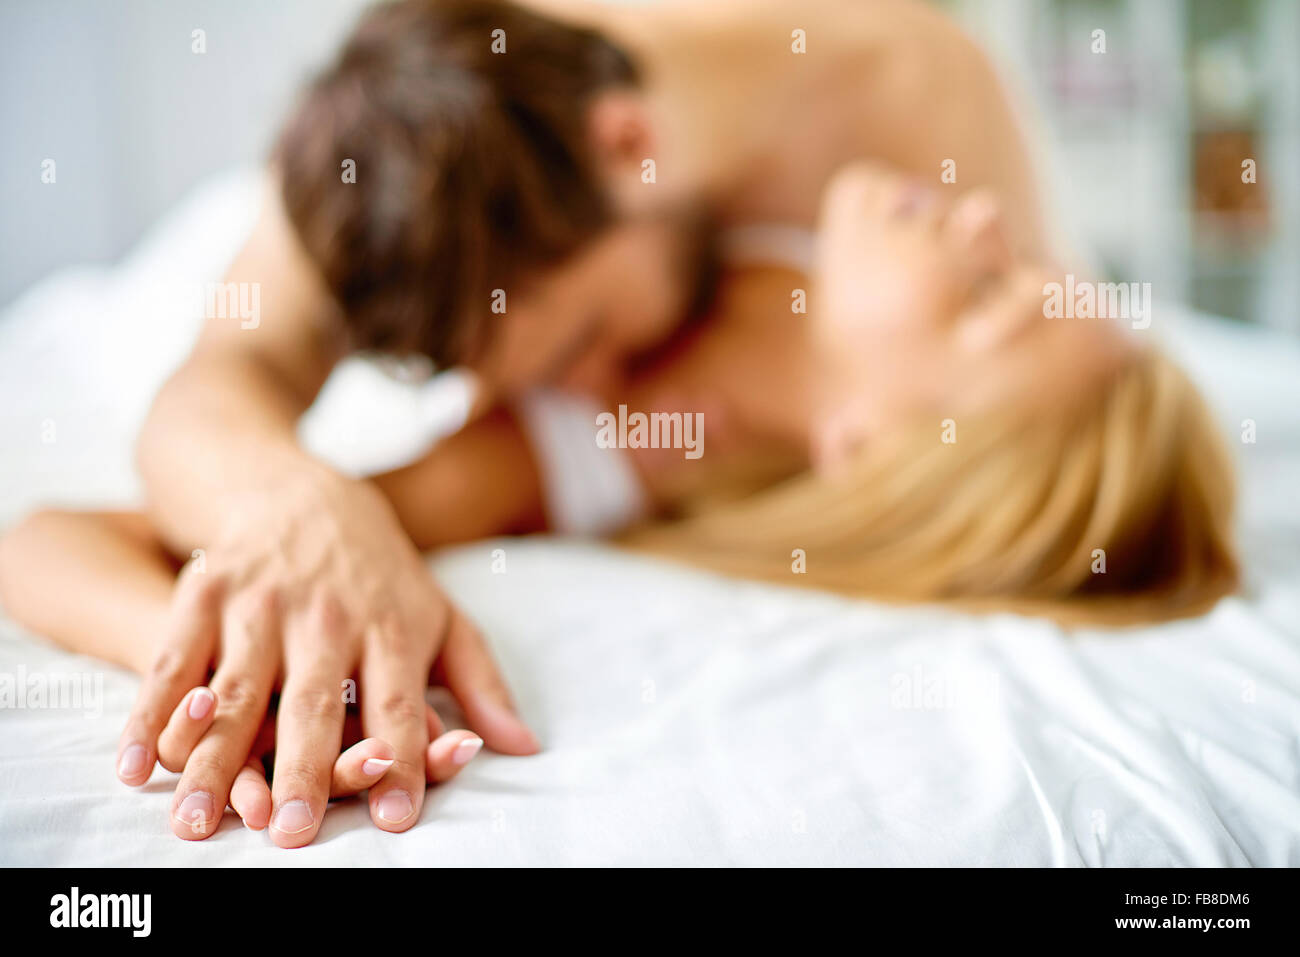 how to cuddle a man in bed